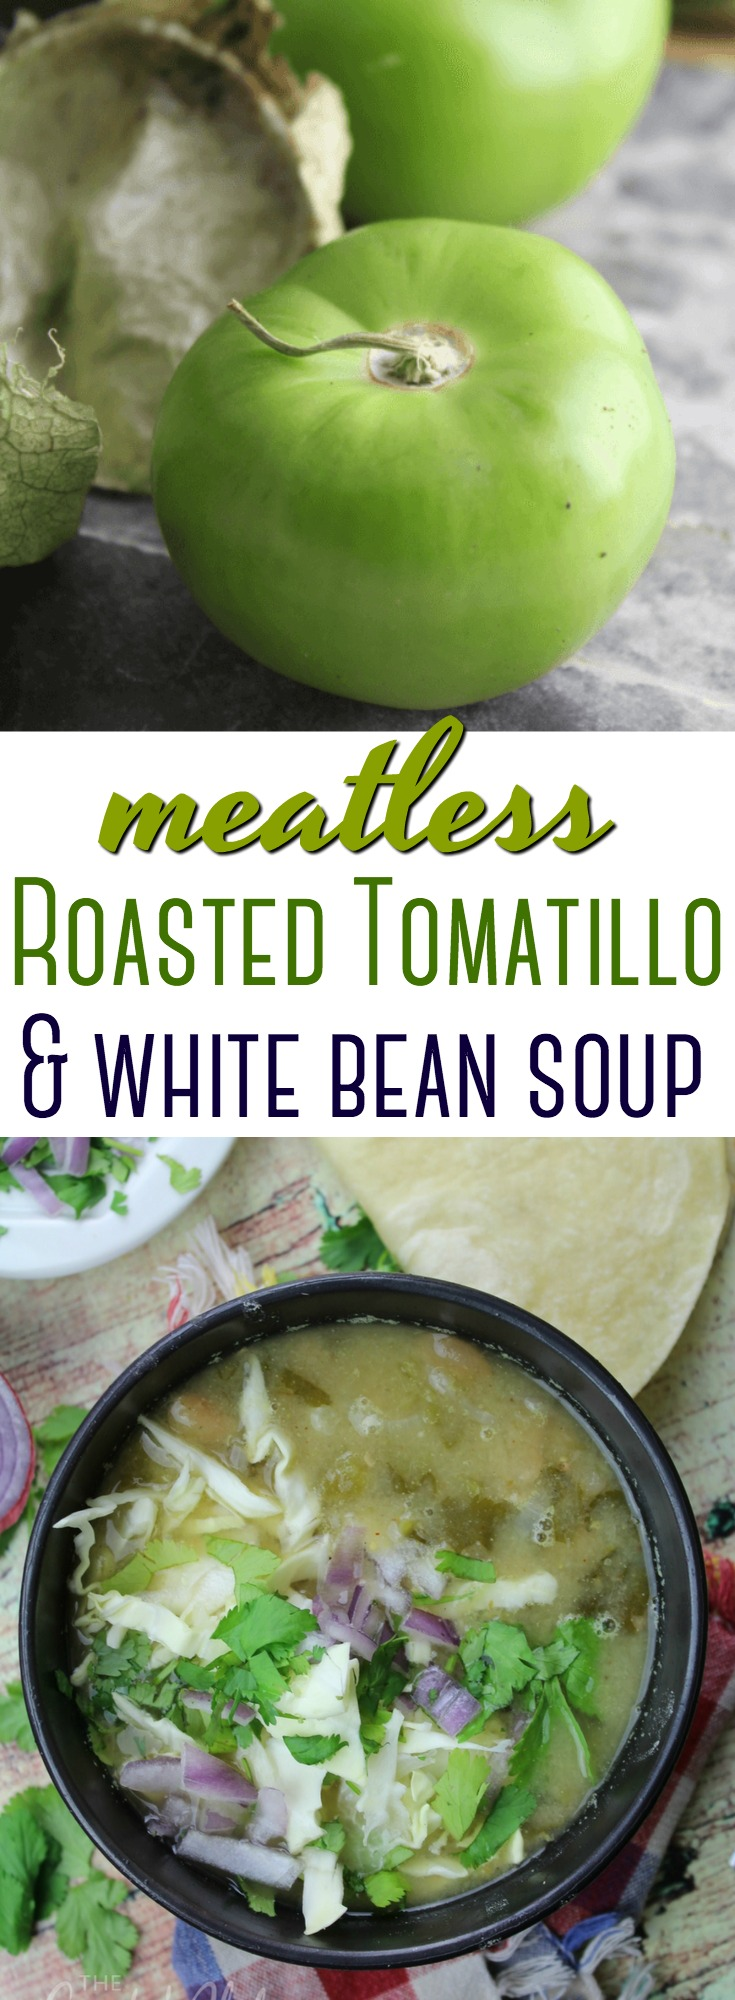 This Roasted Tomatillo and Bean soup is easy to throw together quickly for a flavorful, hearty Mexican-inspired meatless meal! #Mexican #tomatillo #meatless #soup #healthy